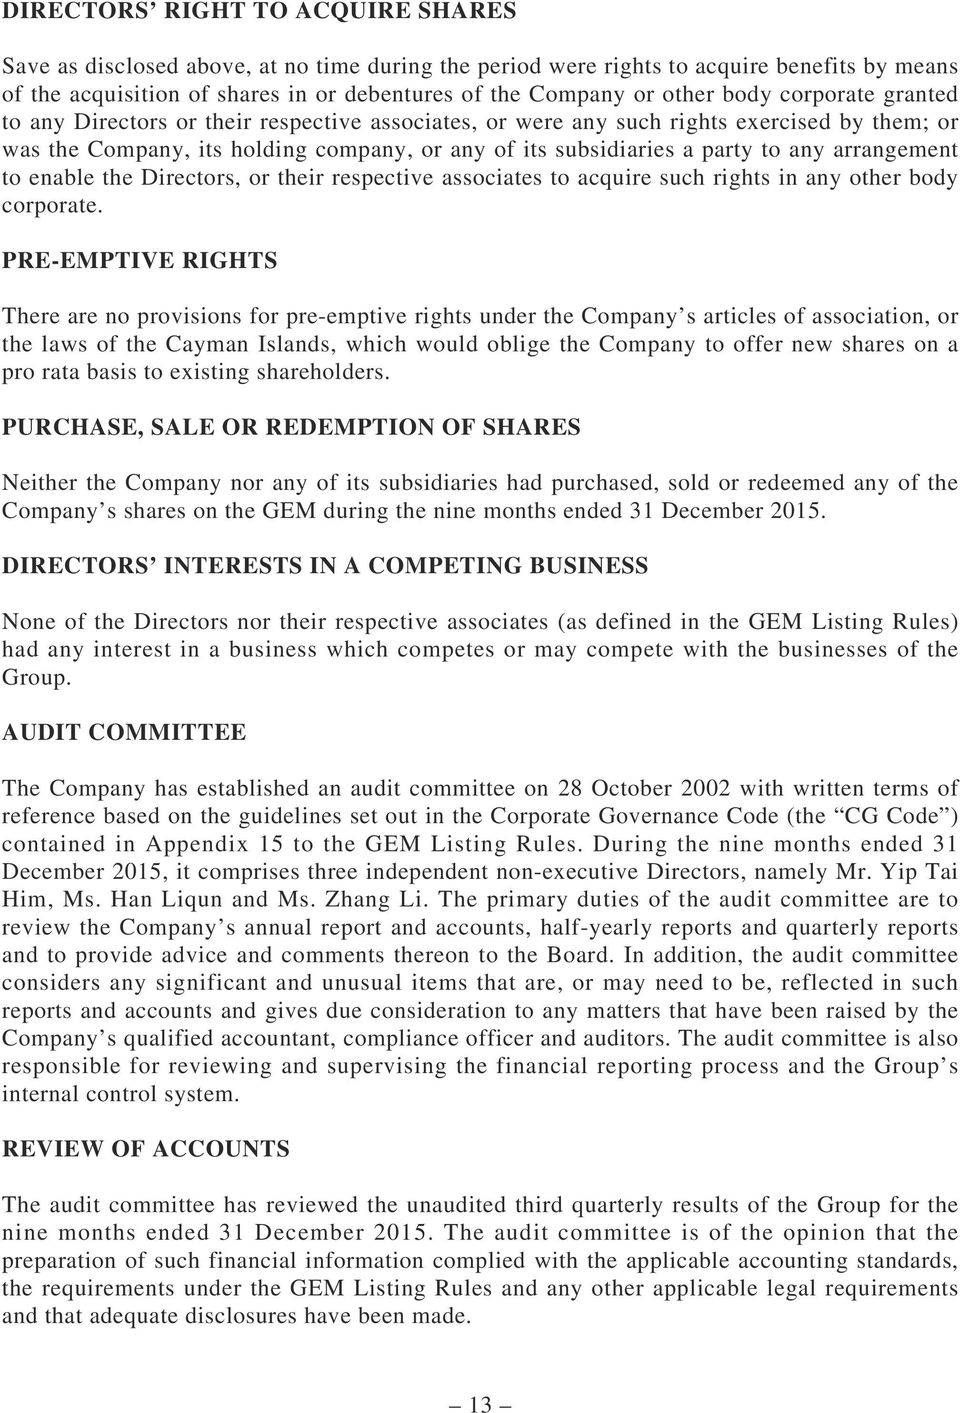 arrangement to enable the Directors, or their respective associates to acquire such rights in any other body corporate.